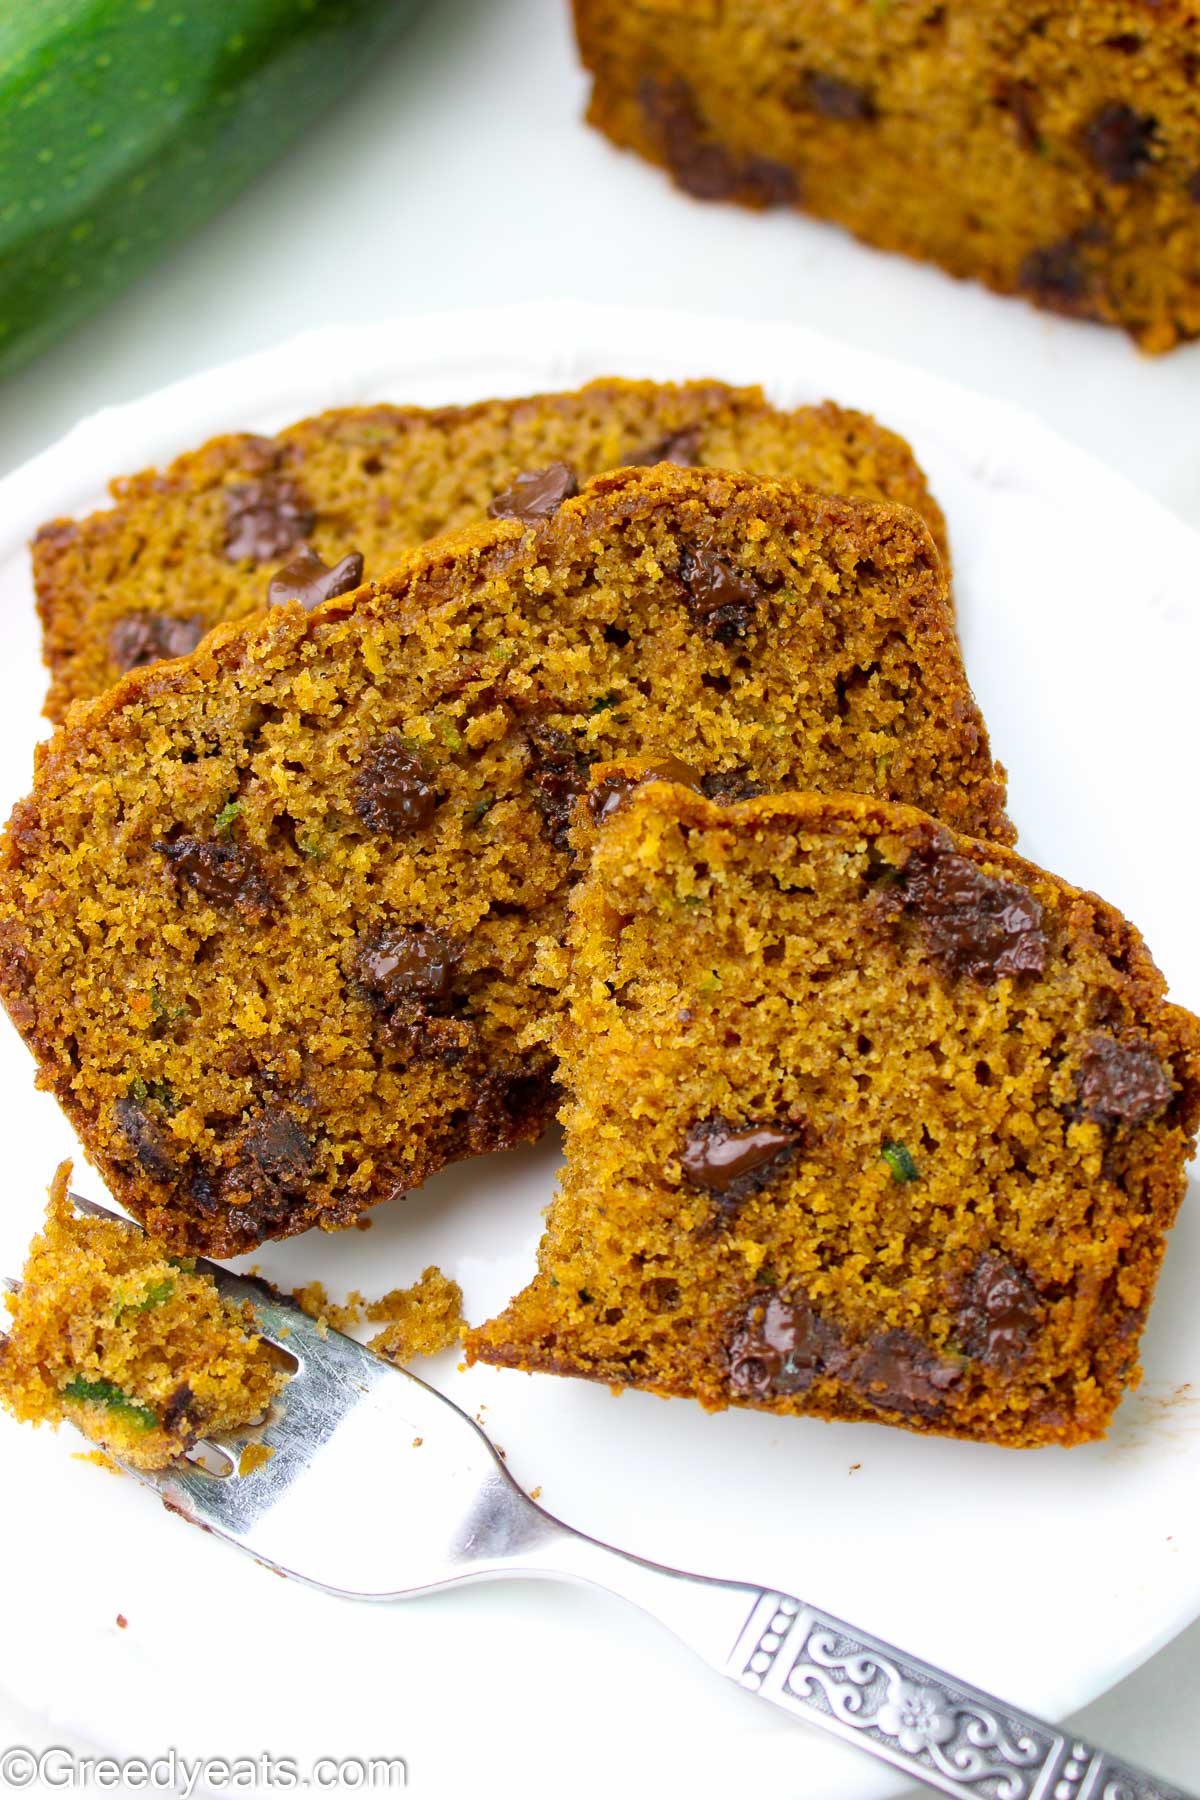 Homemade Zucchini Bread slices filled with aromatic spices and choc chips.